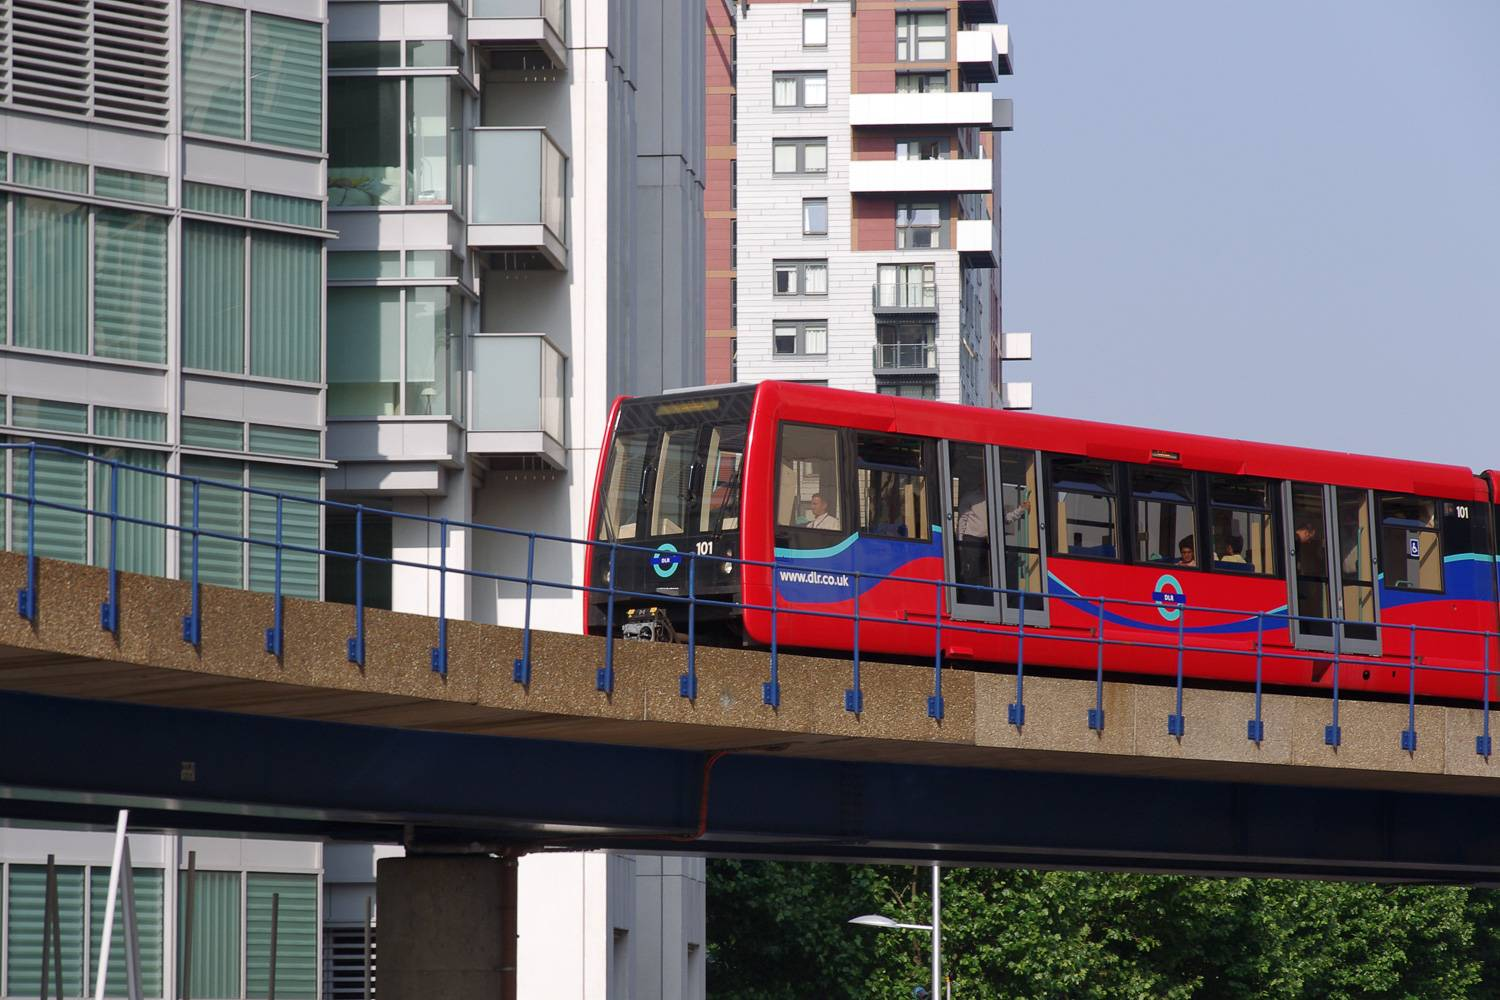 Image of a red DLR train traveling through the Docklands in London.